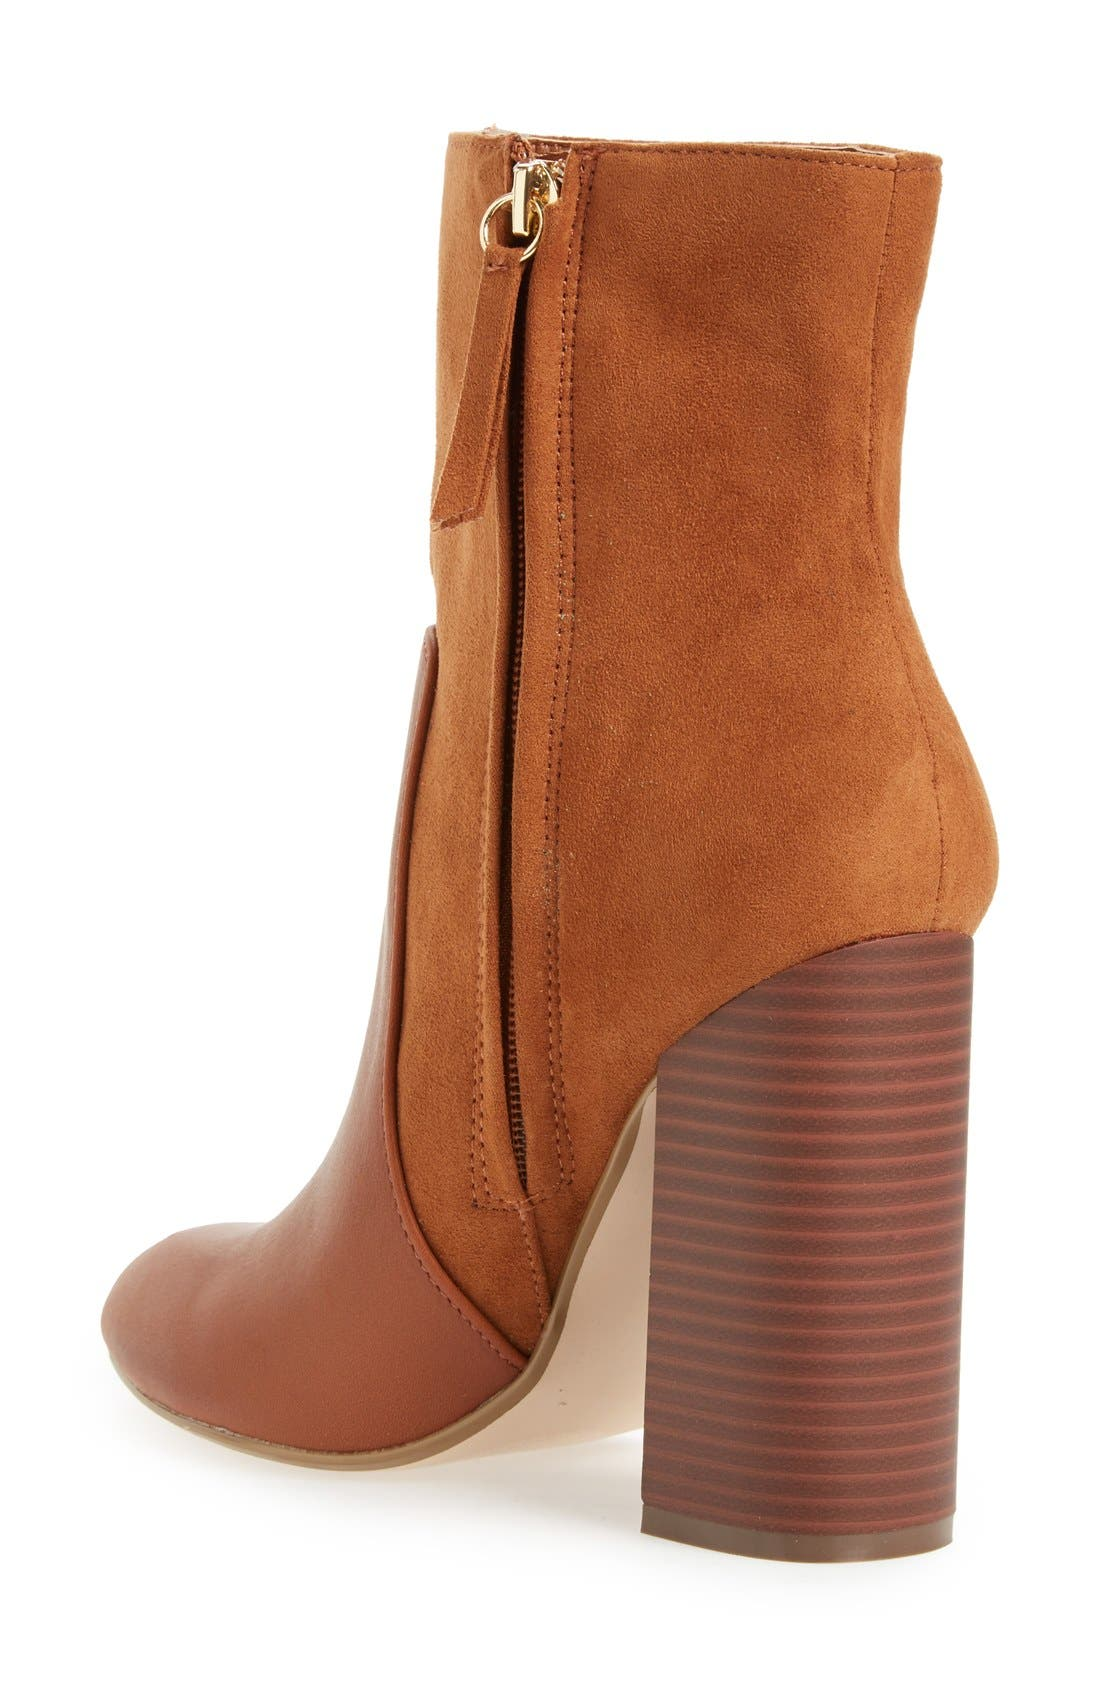 Alternate Image 2  - Athena Alexander 'Farren' Mid Calf Boot (Women)